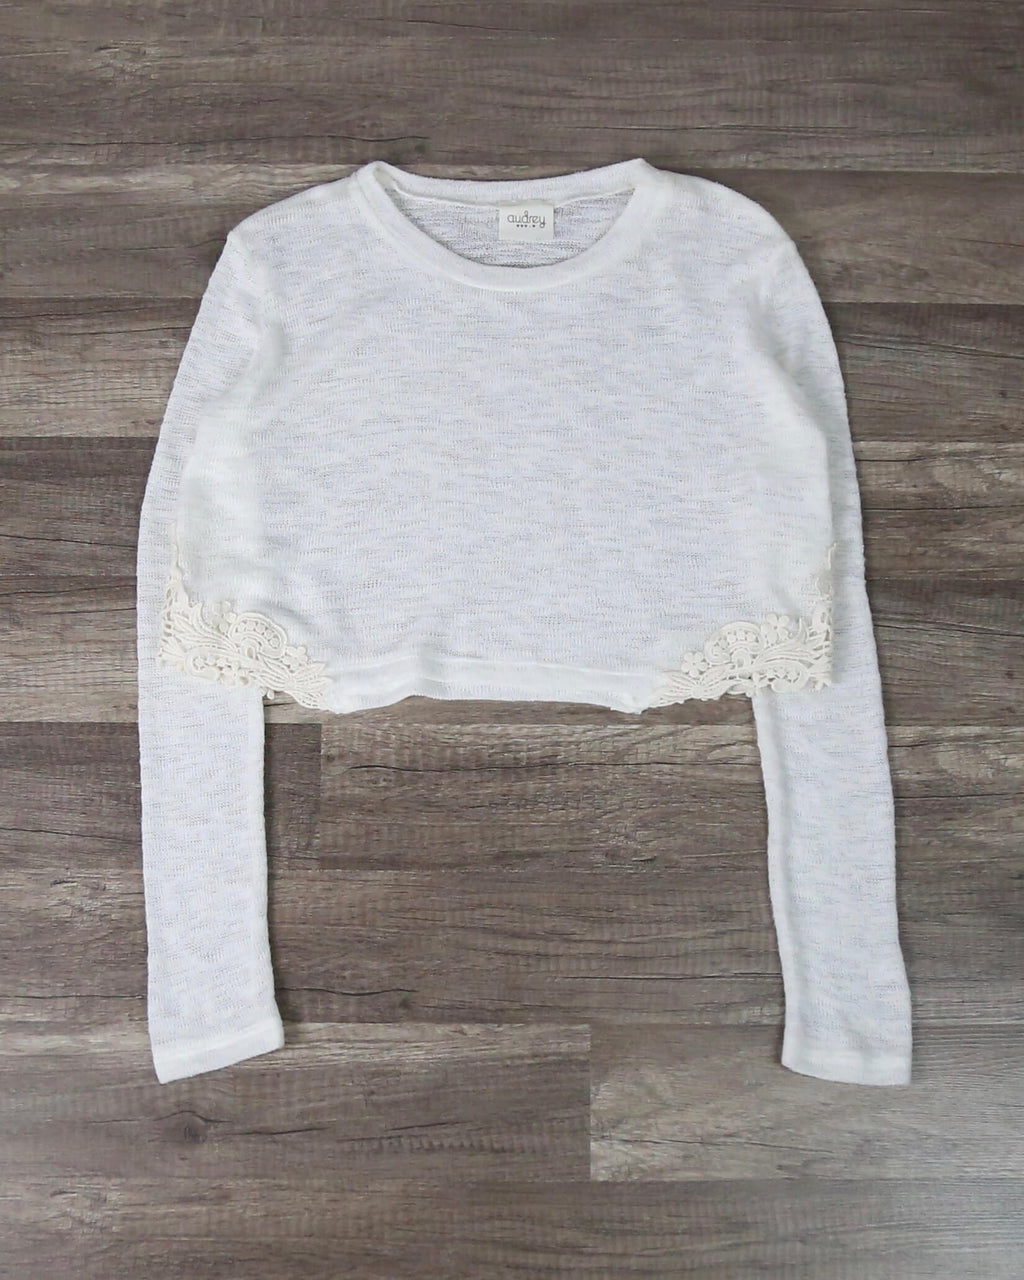 FINAL SALE - Knit Lace Embroidered Hem Crop Top in White